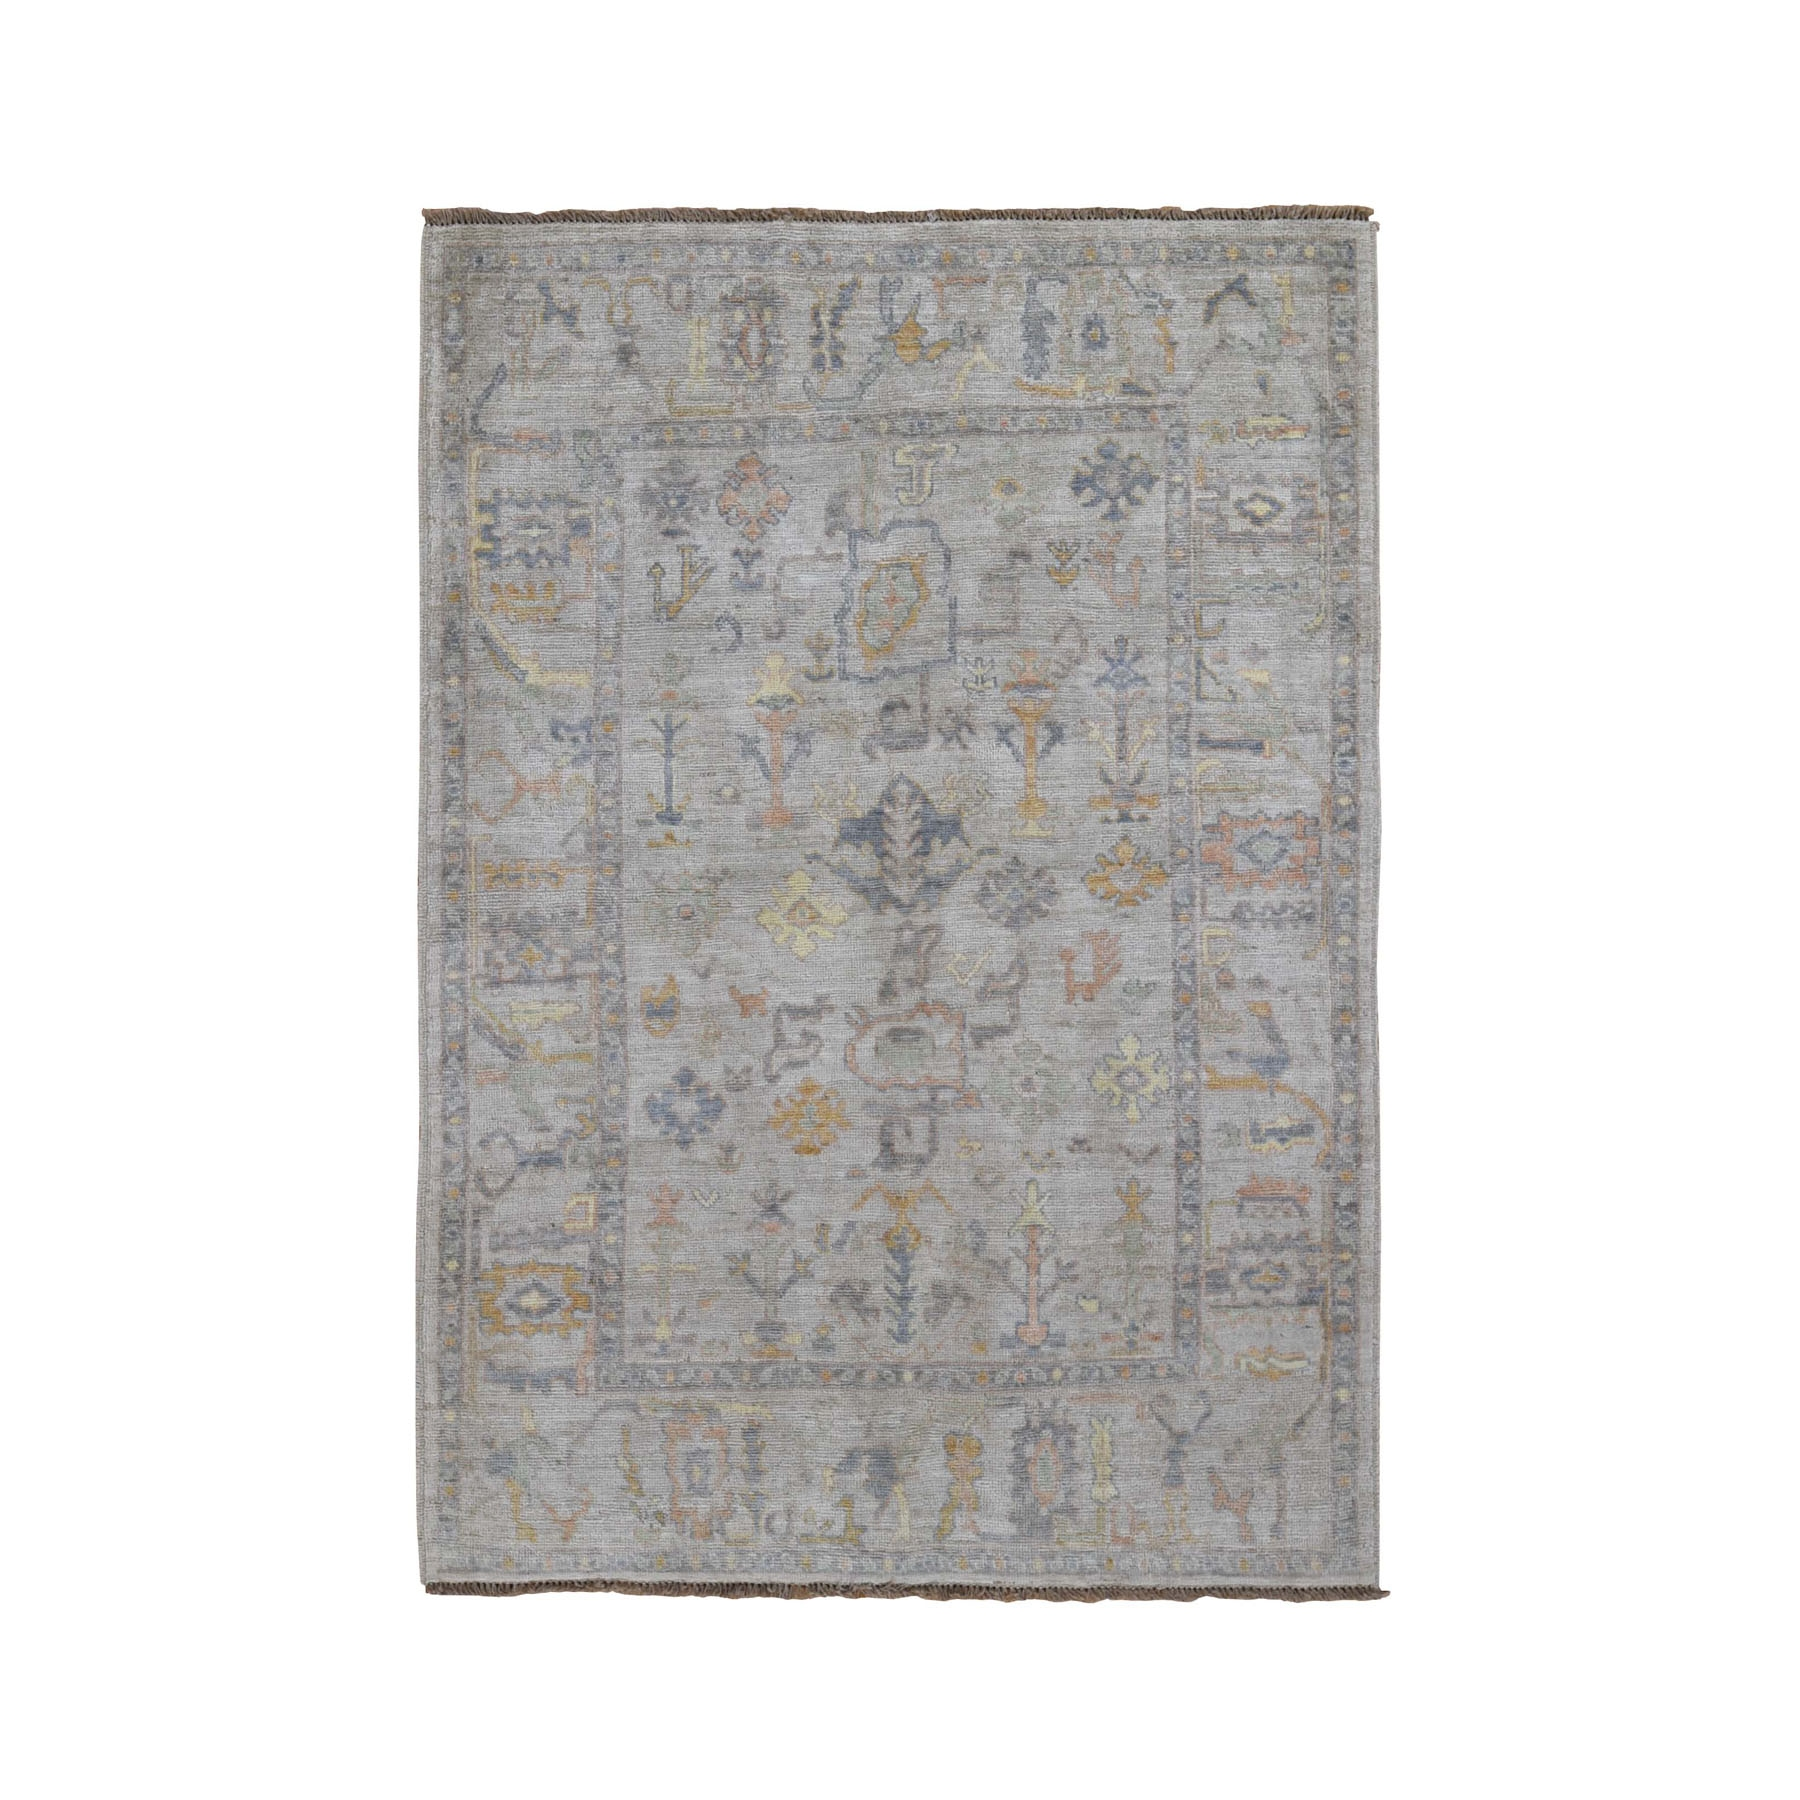 "4'10""x6'9"" Ivory Angora Oushak With Soft Velvety Wool Hand Woven Oriental Rug"